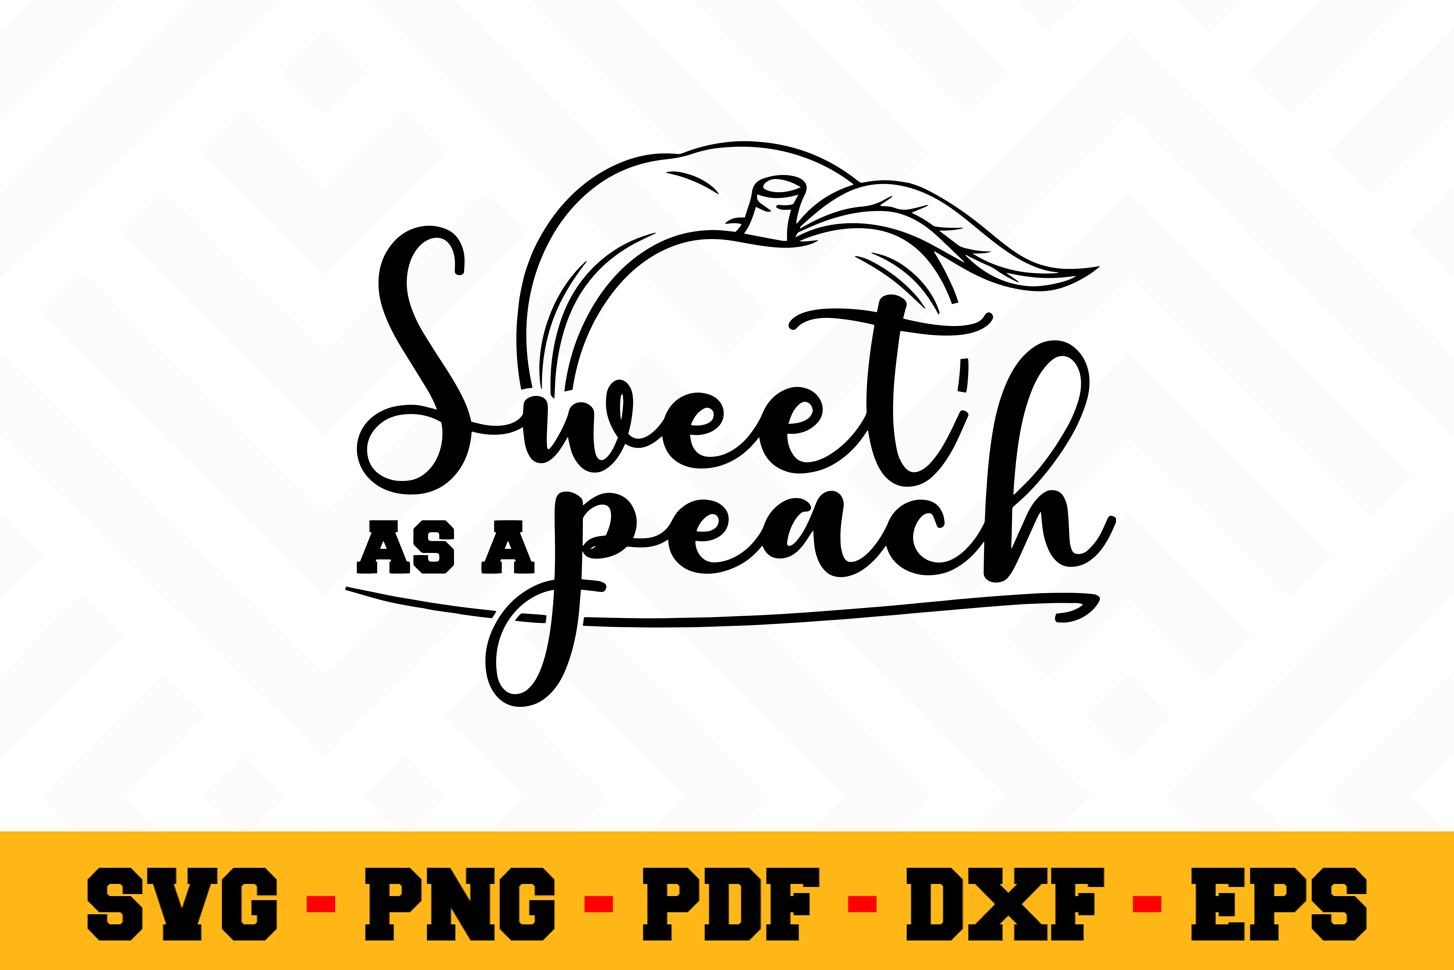 Sweet as a peach SVG Design n651 | Southern SVG Cut File example image 1